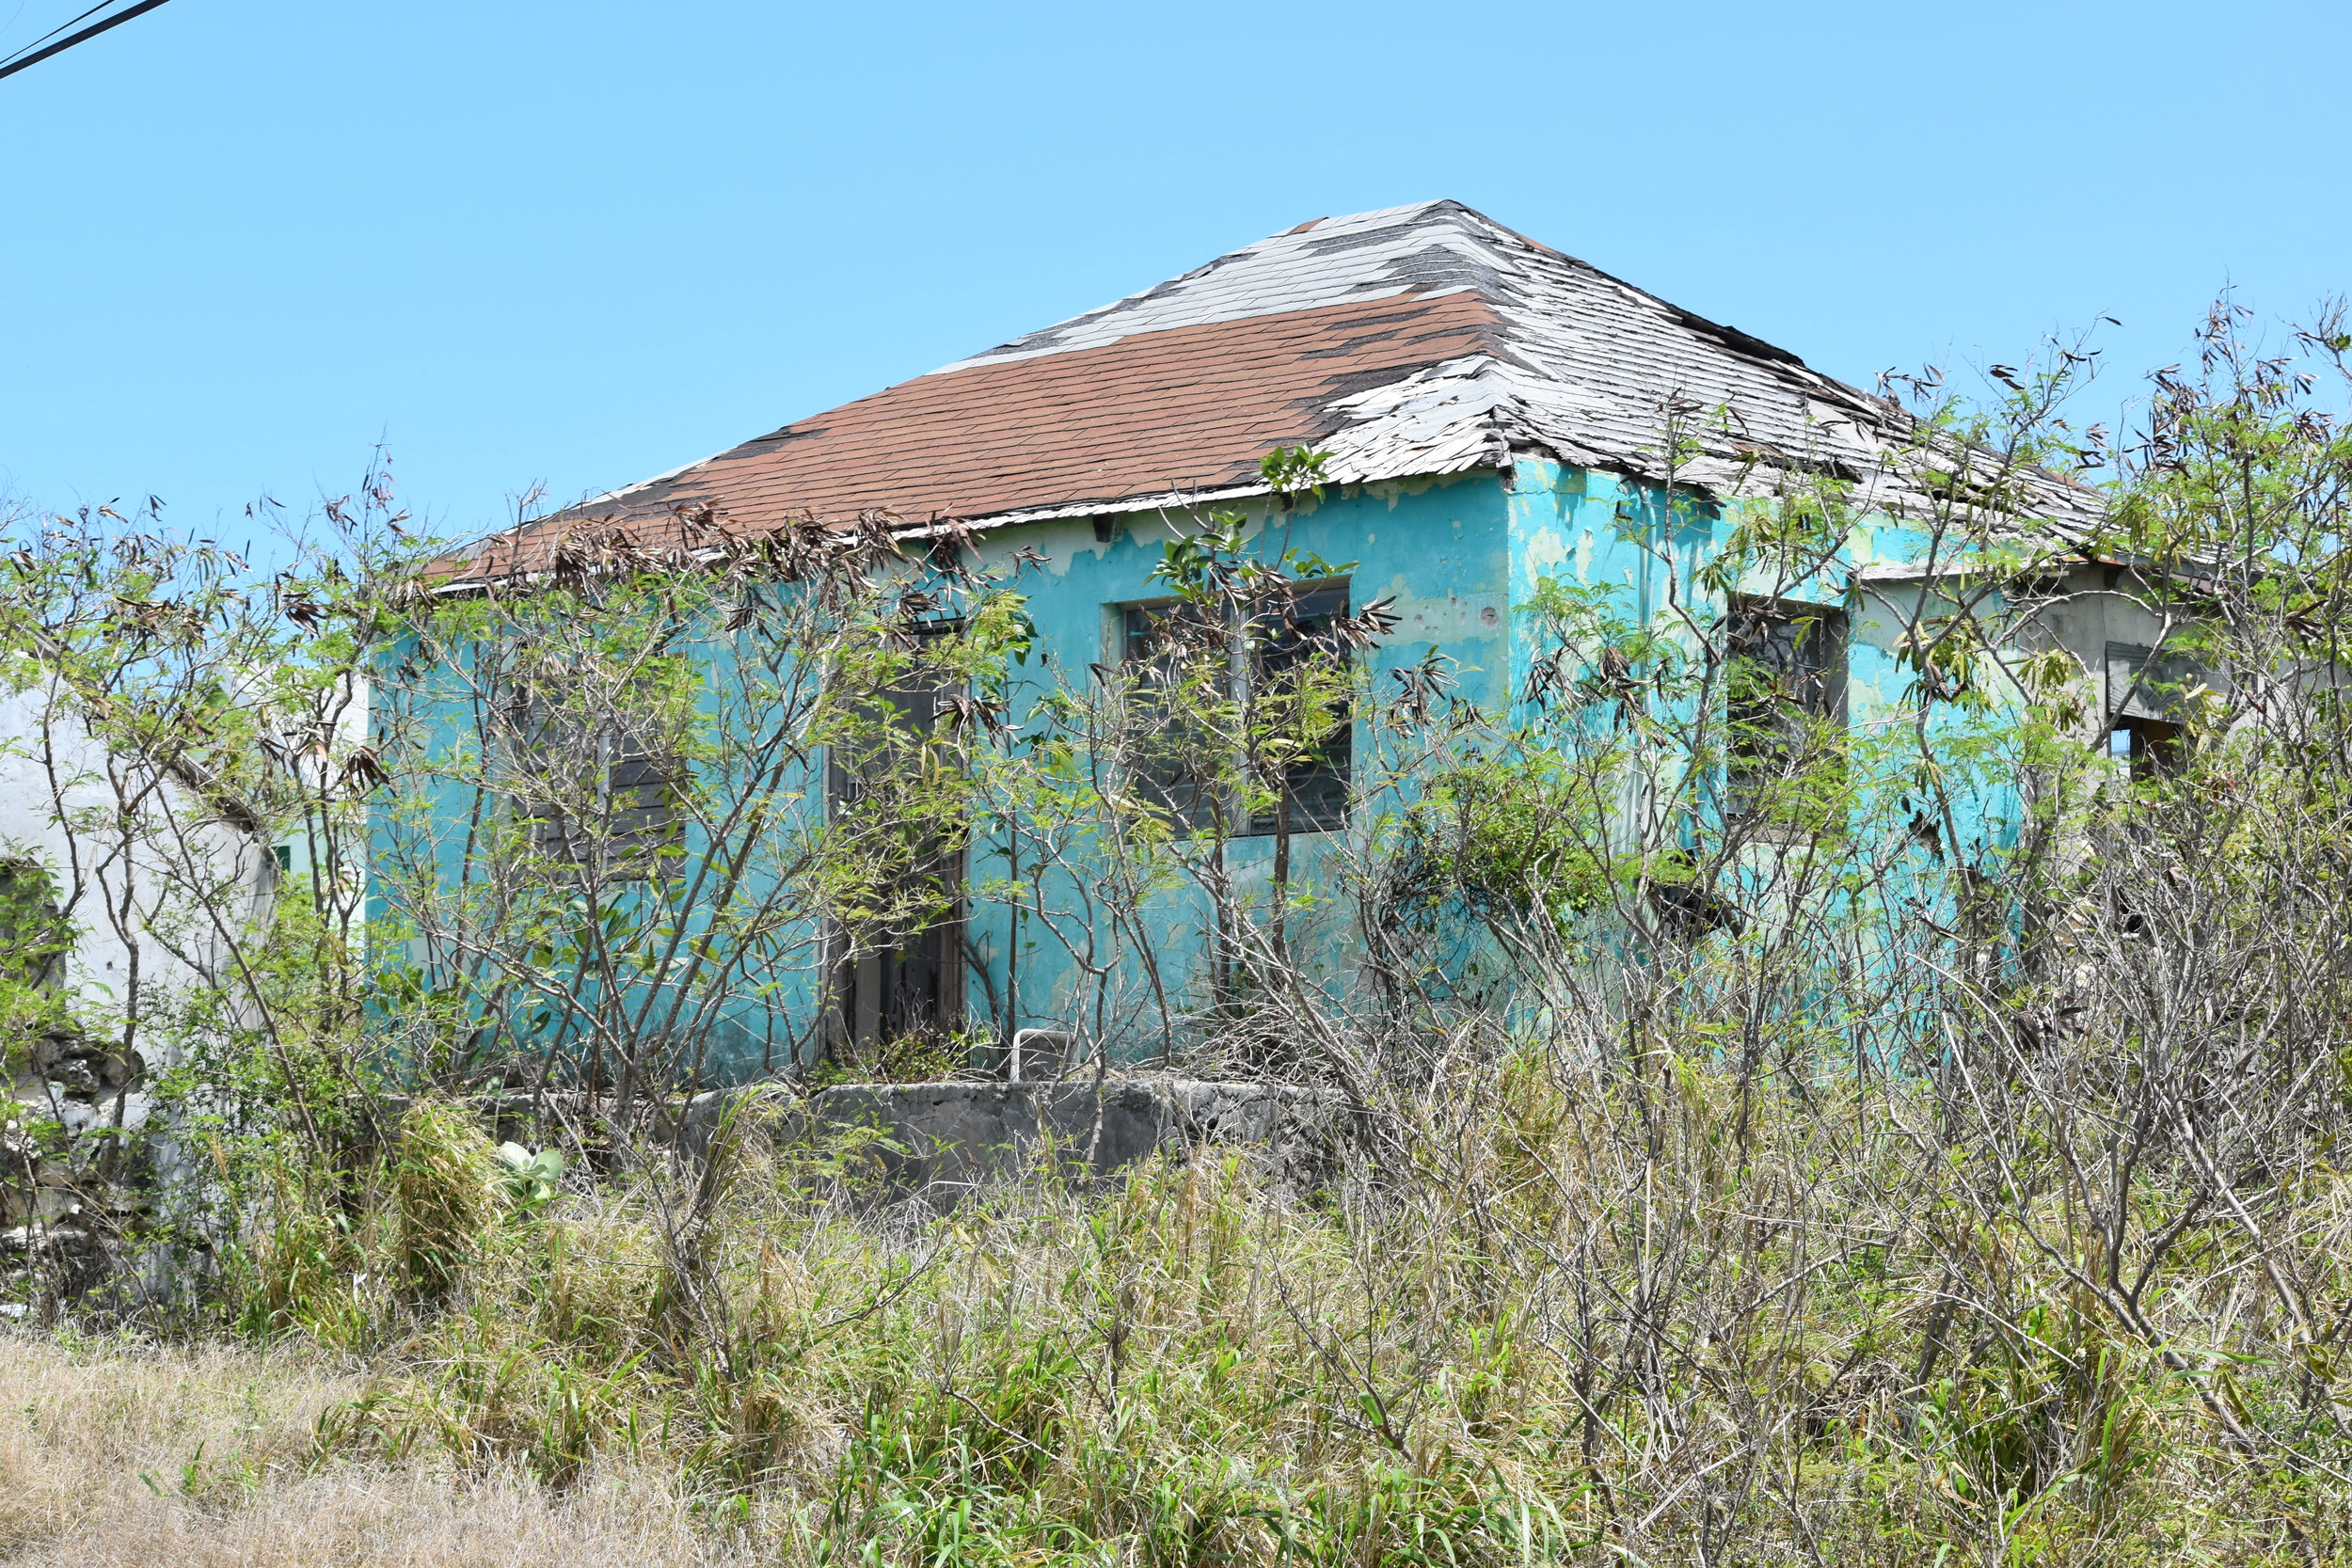 Dying settlements on Exuma, abandoned schools and clinics after the passage of Hurricanes Irene and Sandy (2011, 2012 respectively. All photographs courtesy of Dr. Ian Bethell-Bennett.